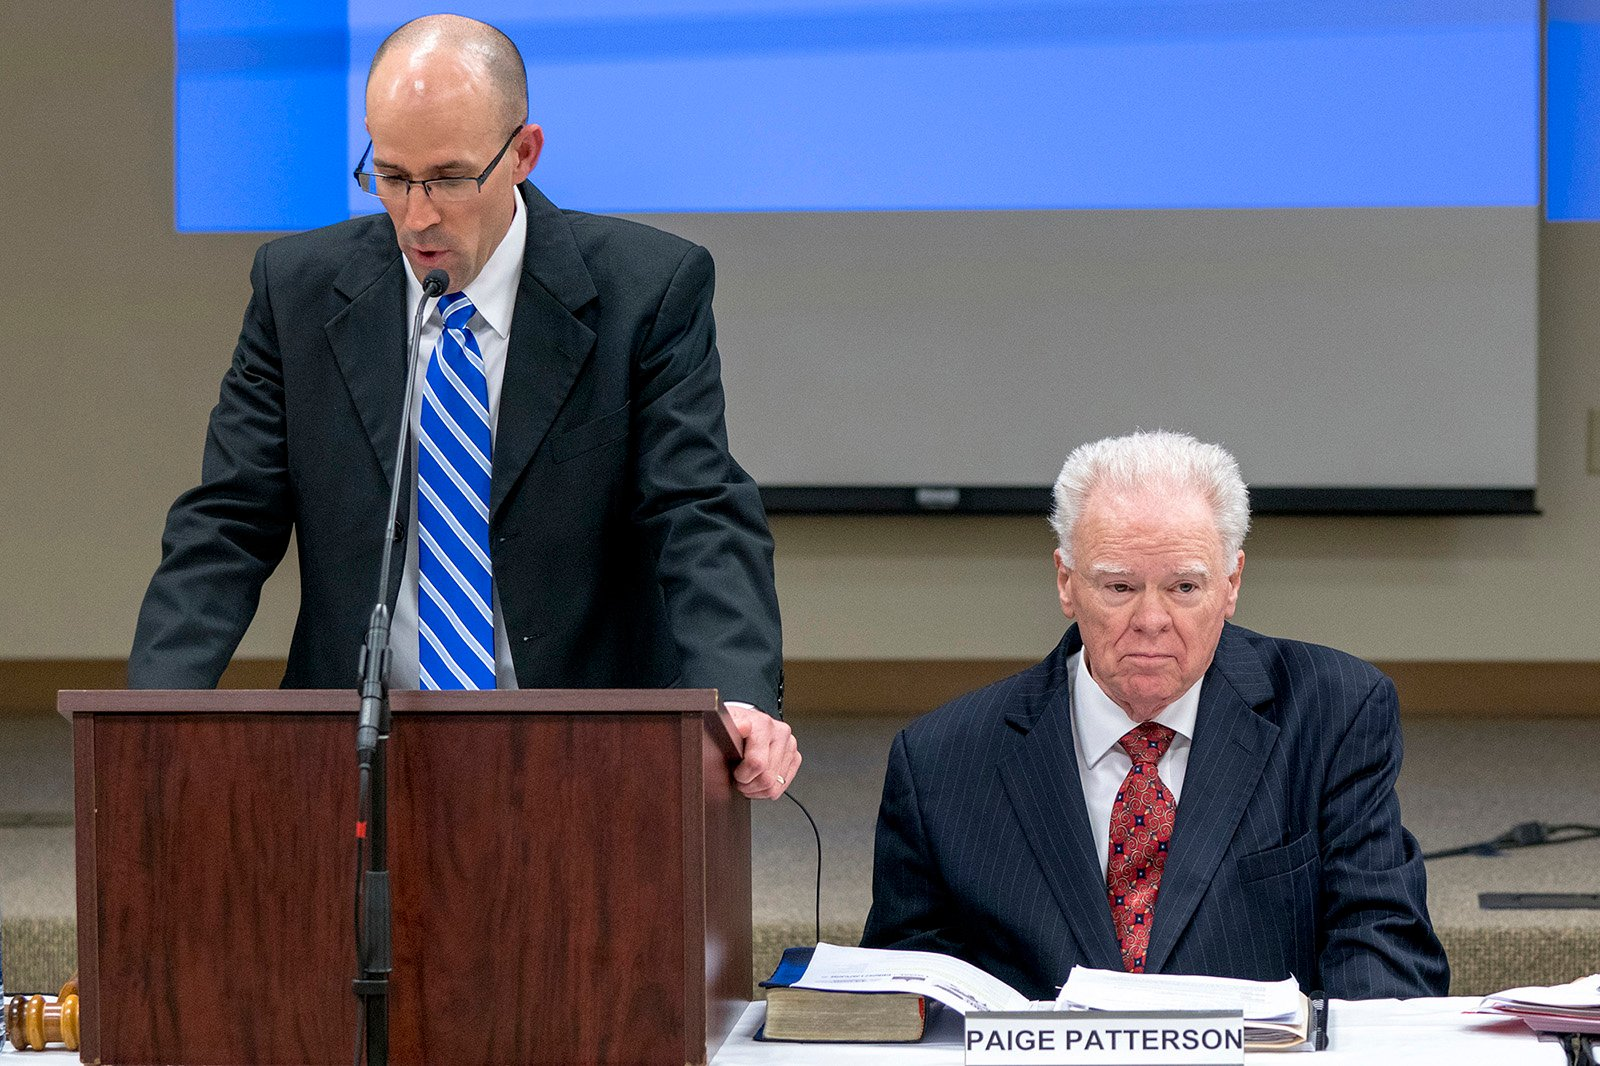 Southwestern Baptist Theological Seminary trustee chairman Kevin Ueckert, left, addresses trustees at a special called meeting at the Fort Worth, Texas, campus on May 22, 2018. The board met to discuss the recent controversies surrounding seminary President Paige Patterson, right. Photo by Adam Covington/SWBTS